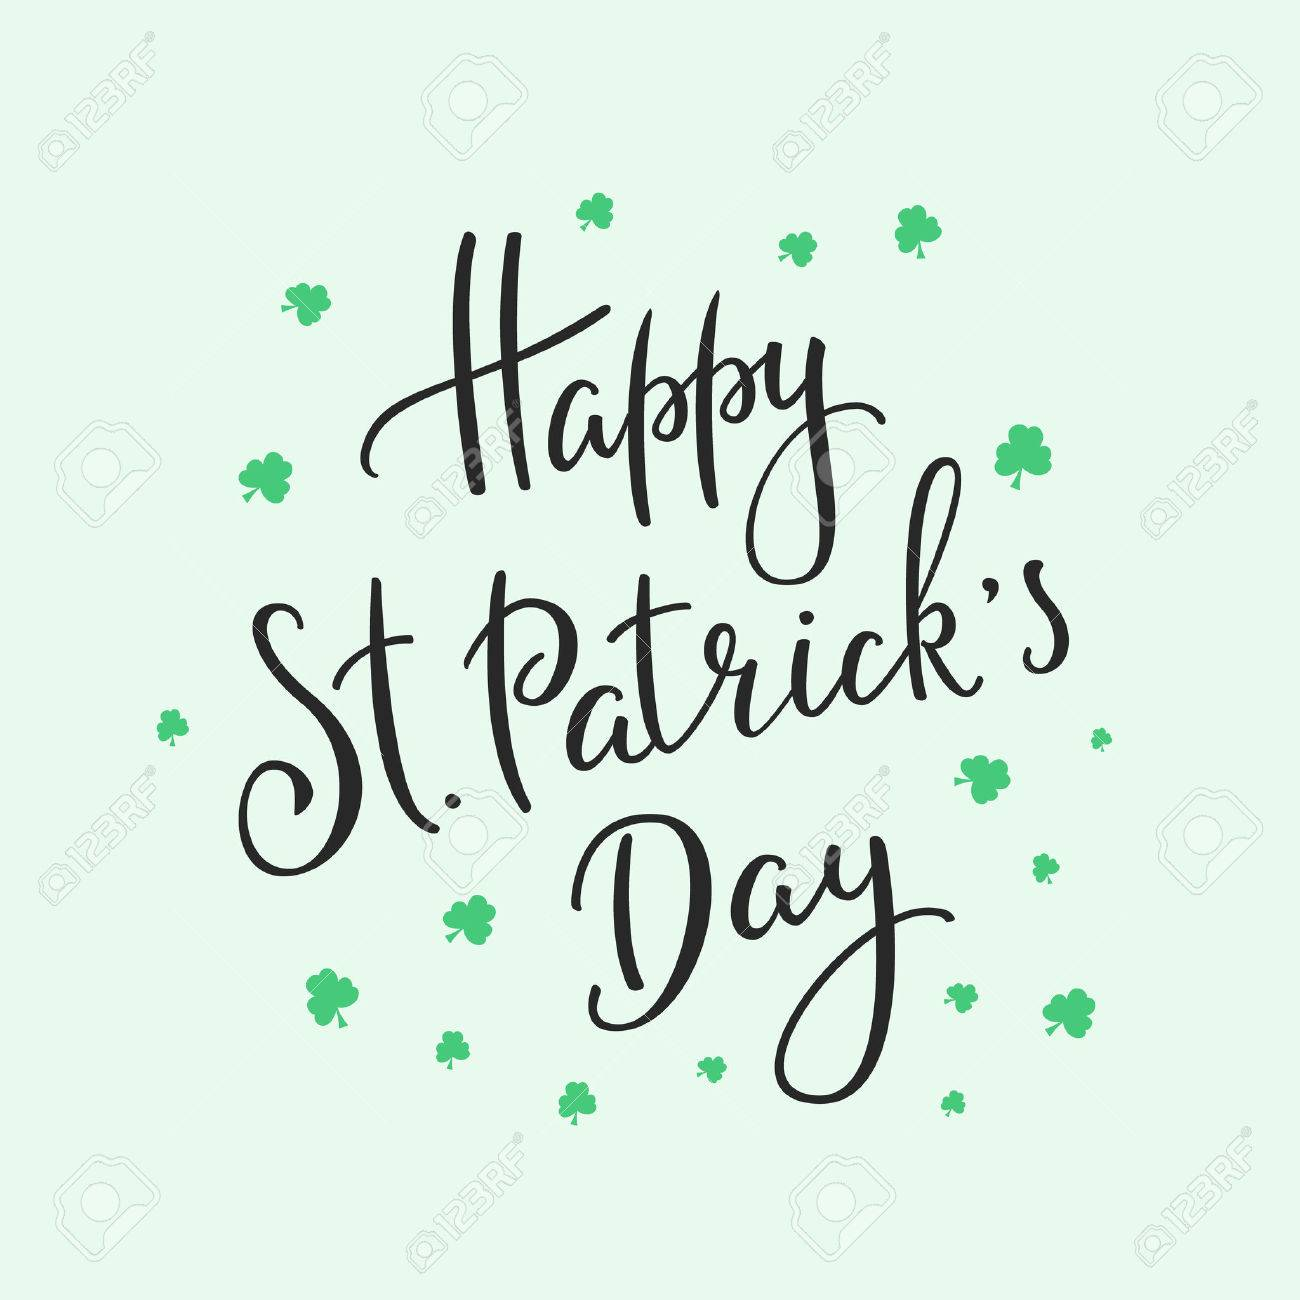 Happy St Patricks Day Simple Lettering Calligraphy Postcard Or Poster Graphic Design Element